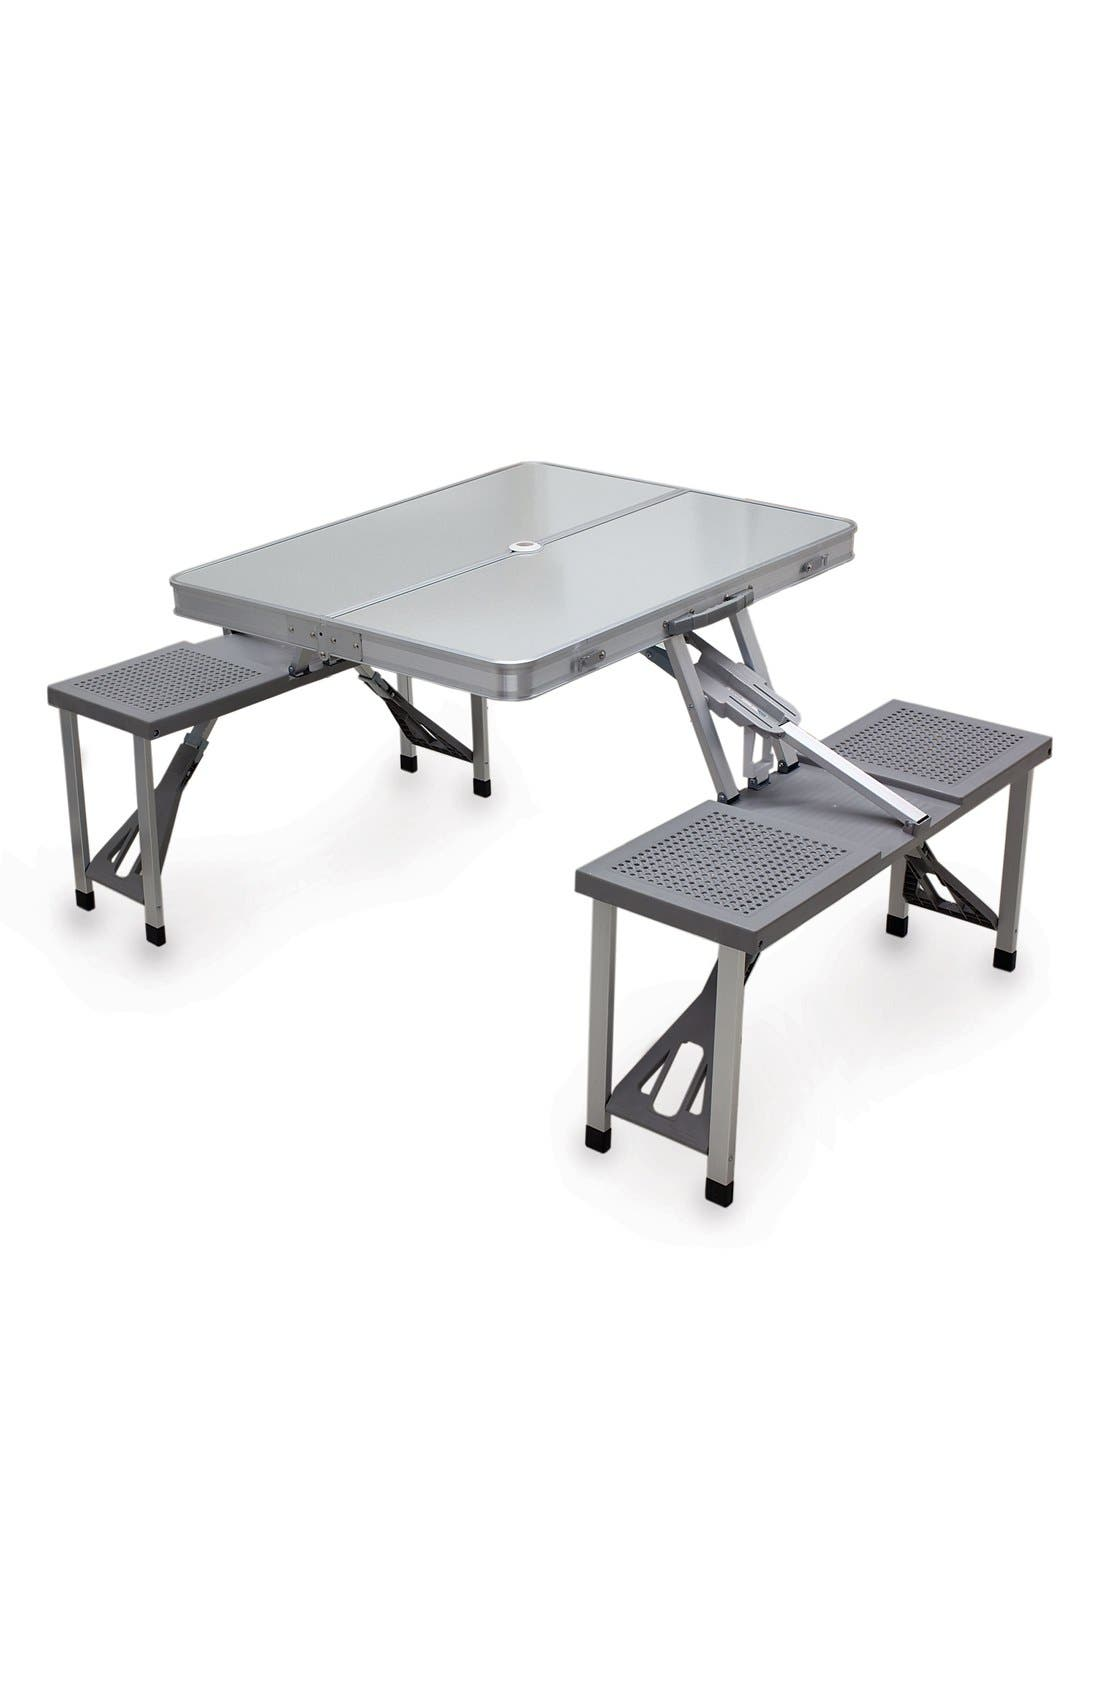 Main Image - Picnic Time Fold-Up Aluminum Picnic Table